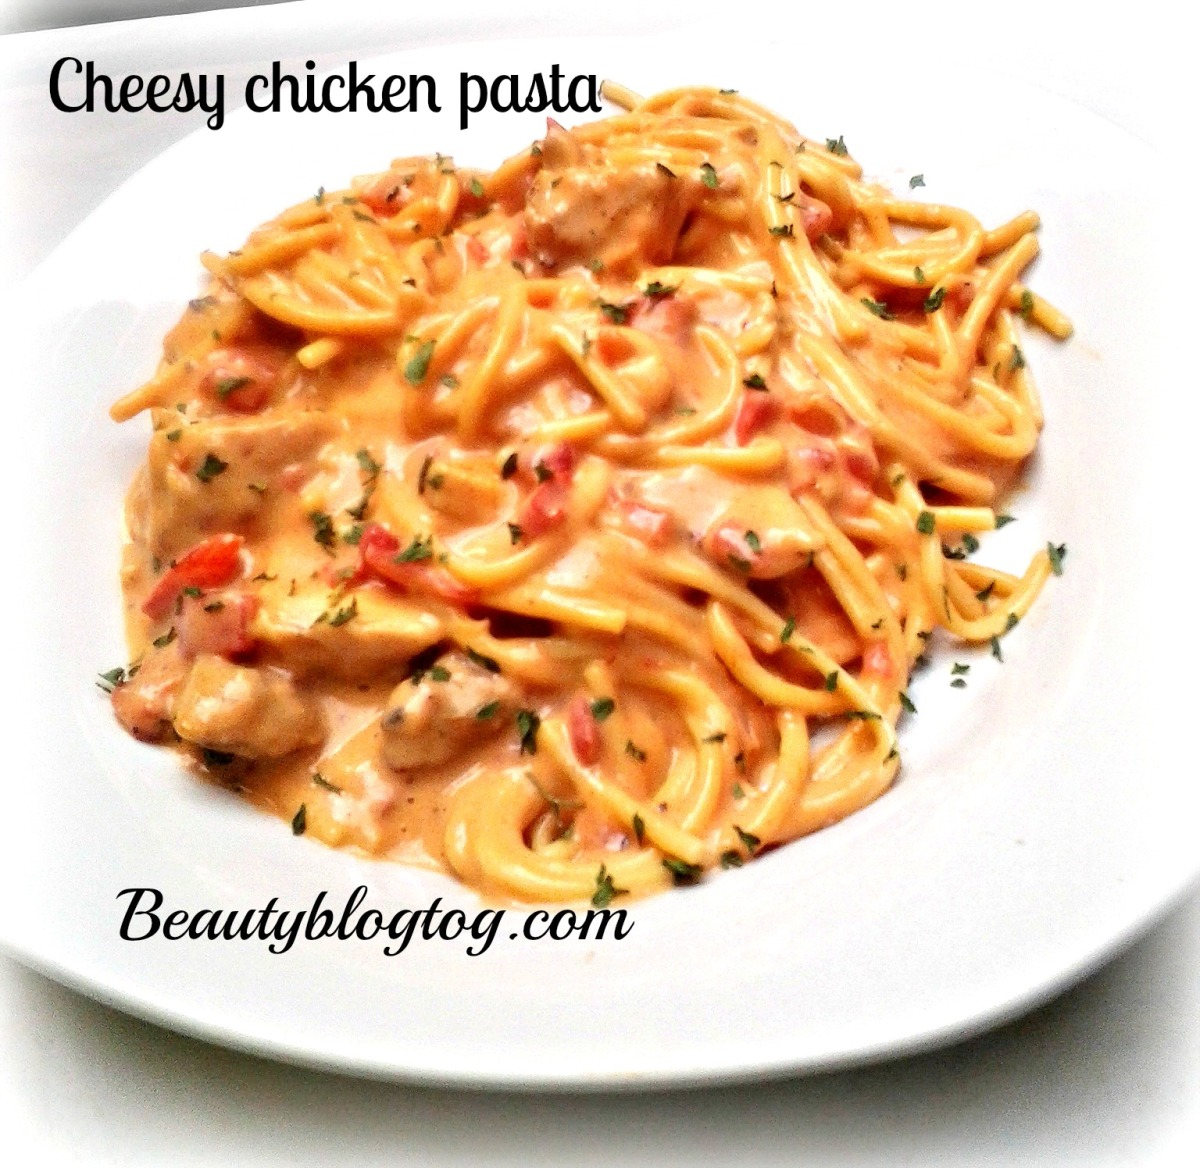 CHEESY CHICKEN PASTA RECIPE